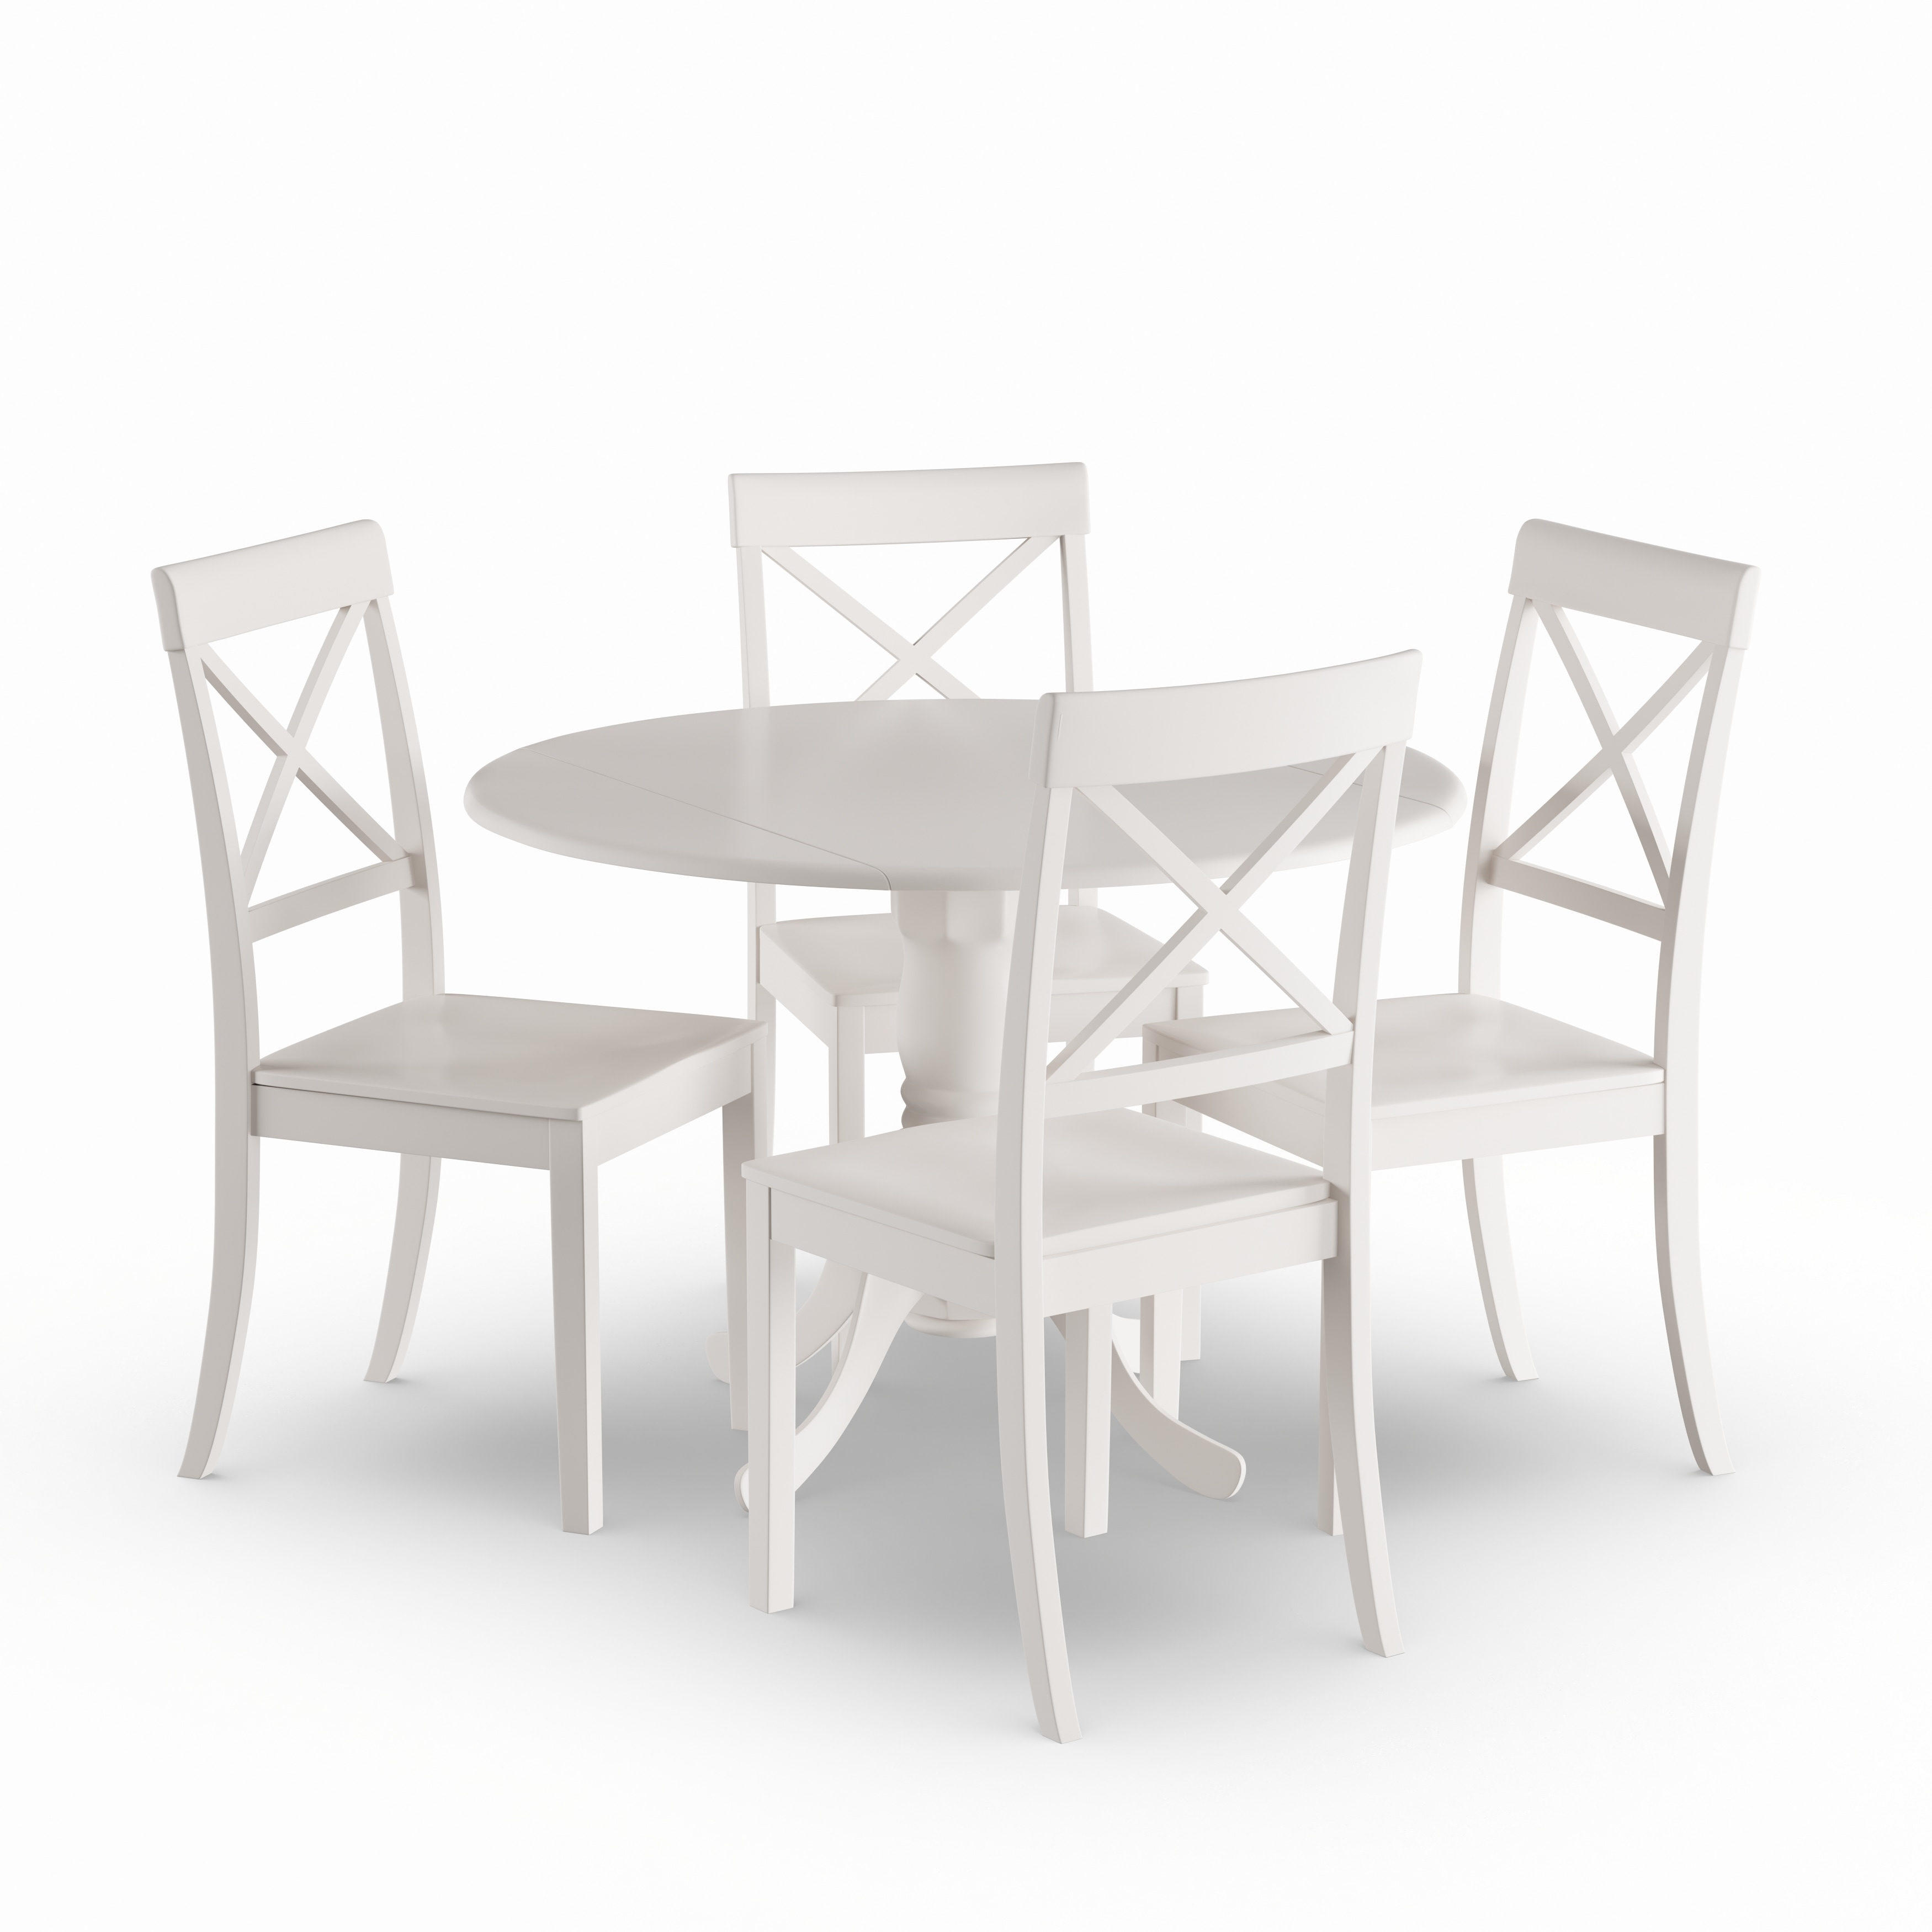 Black Dining Room Table And Chairs The Gray Barn Windy Poplars Linen White Small Table And 4 Dinette Chairs 5 Piece Dining Set